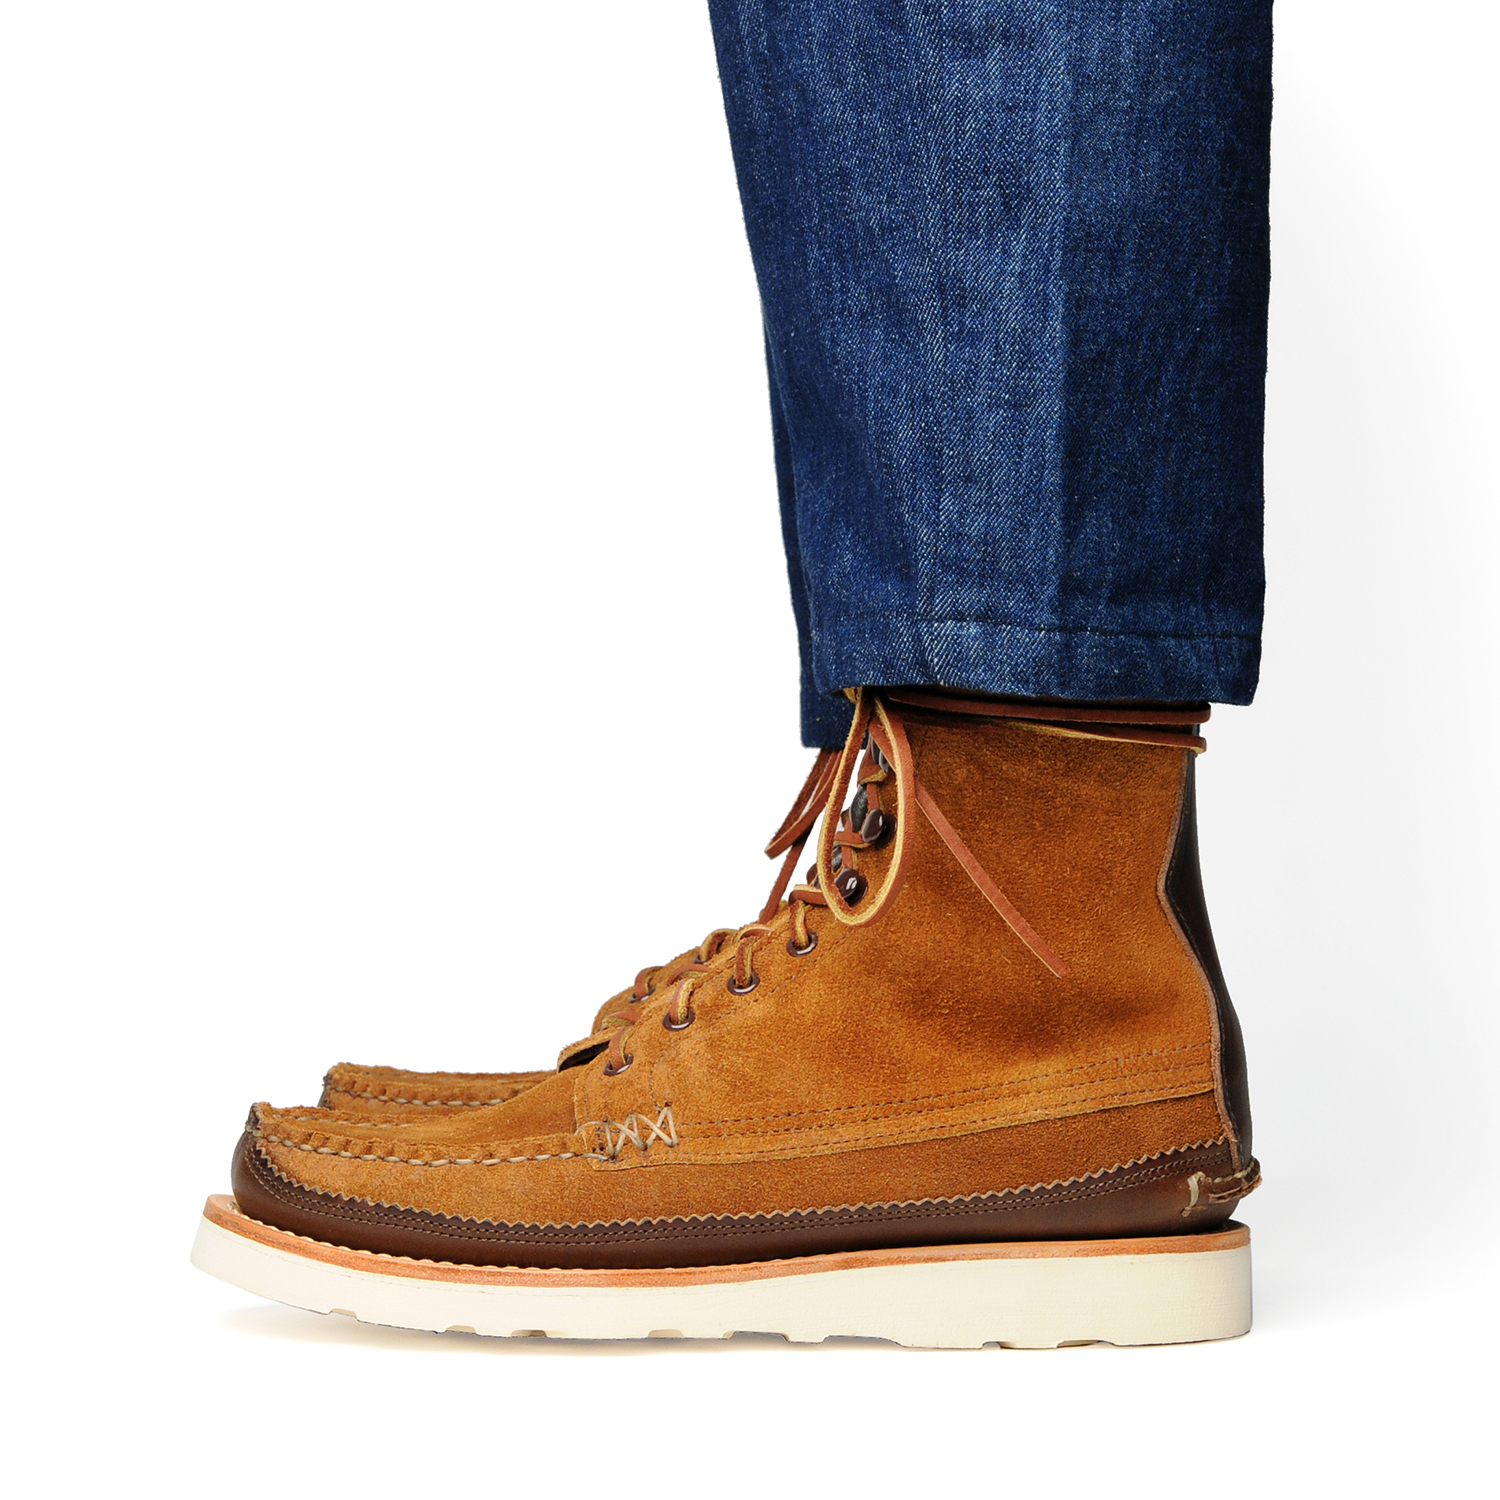 18005PM-Maine-Guide-DB-Boots,-FO-G-Brown,-Wear-Side.jpg